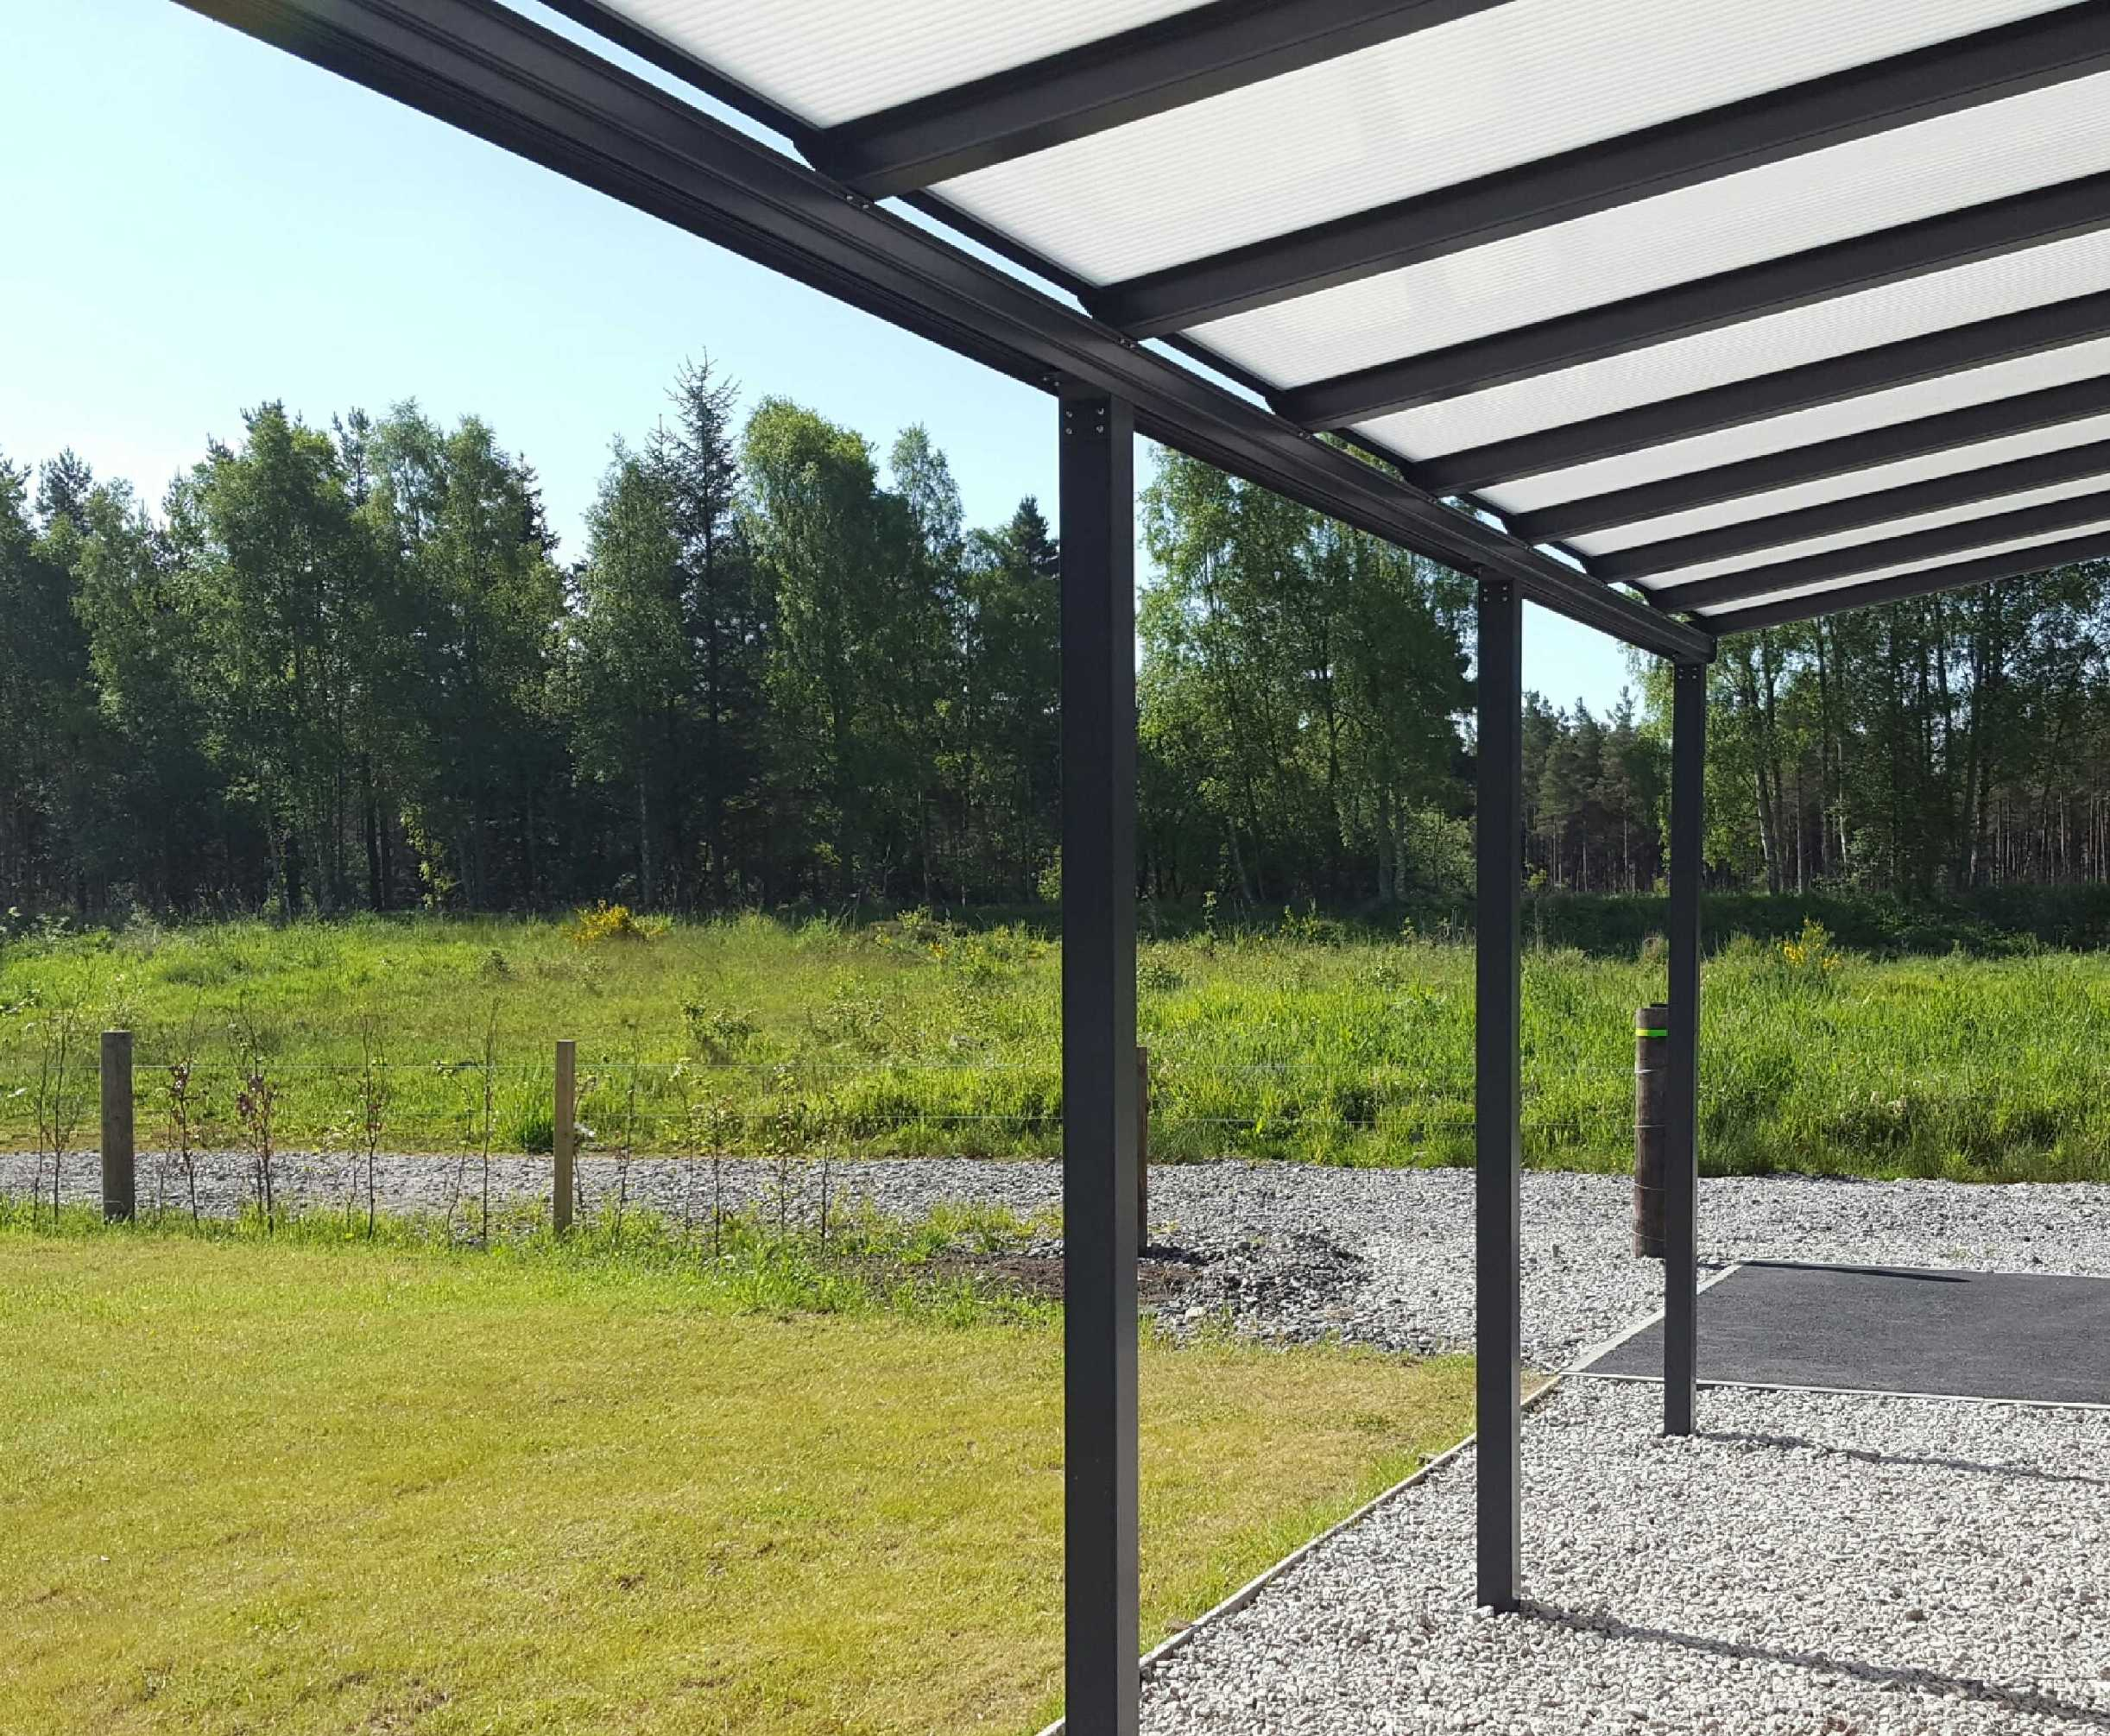 Omega Smart Lean-To Canopy, Anthracite Grey, 16mm Polycarbonate Glazing - 7.4m (W) x 1.5m (P), (4) Supporting Posts